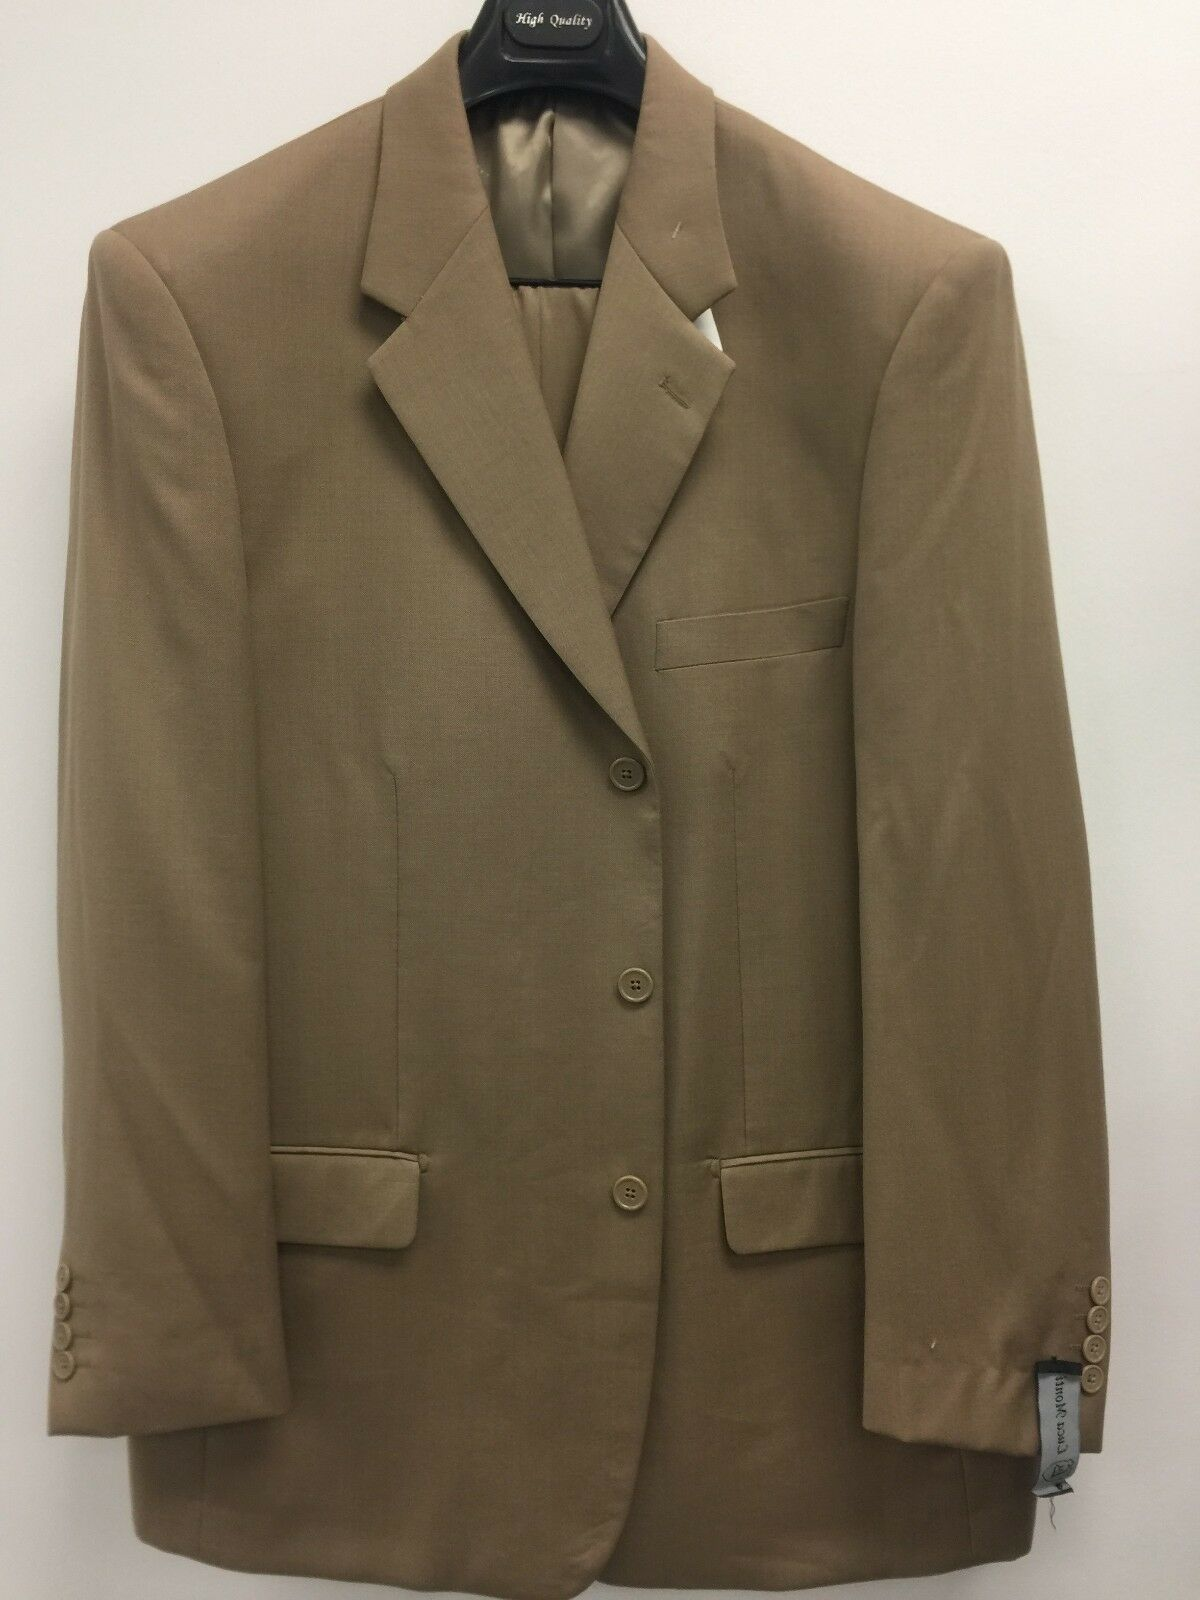 NEW 100%WoolSuit 42R Traditional Fit In Camel Luca Monti 2 Piece